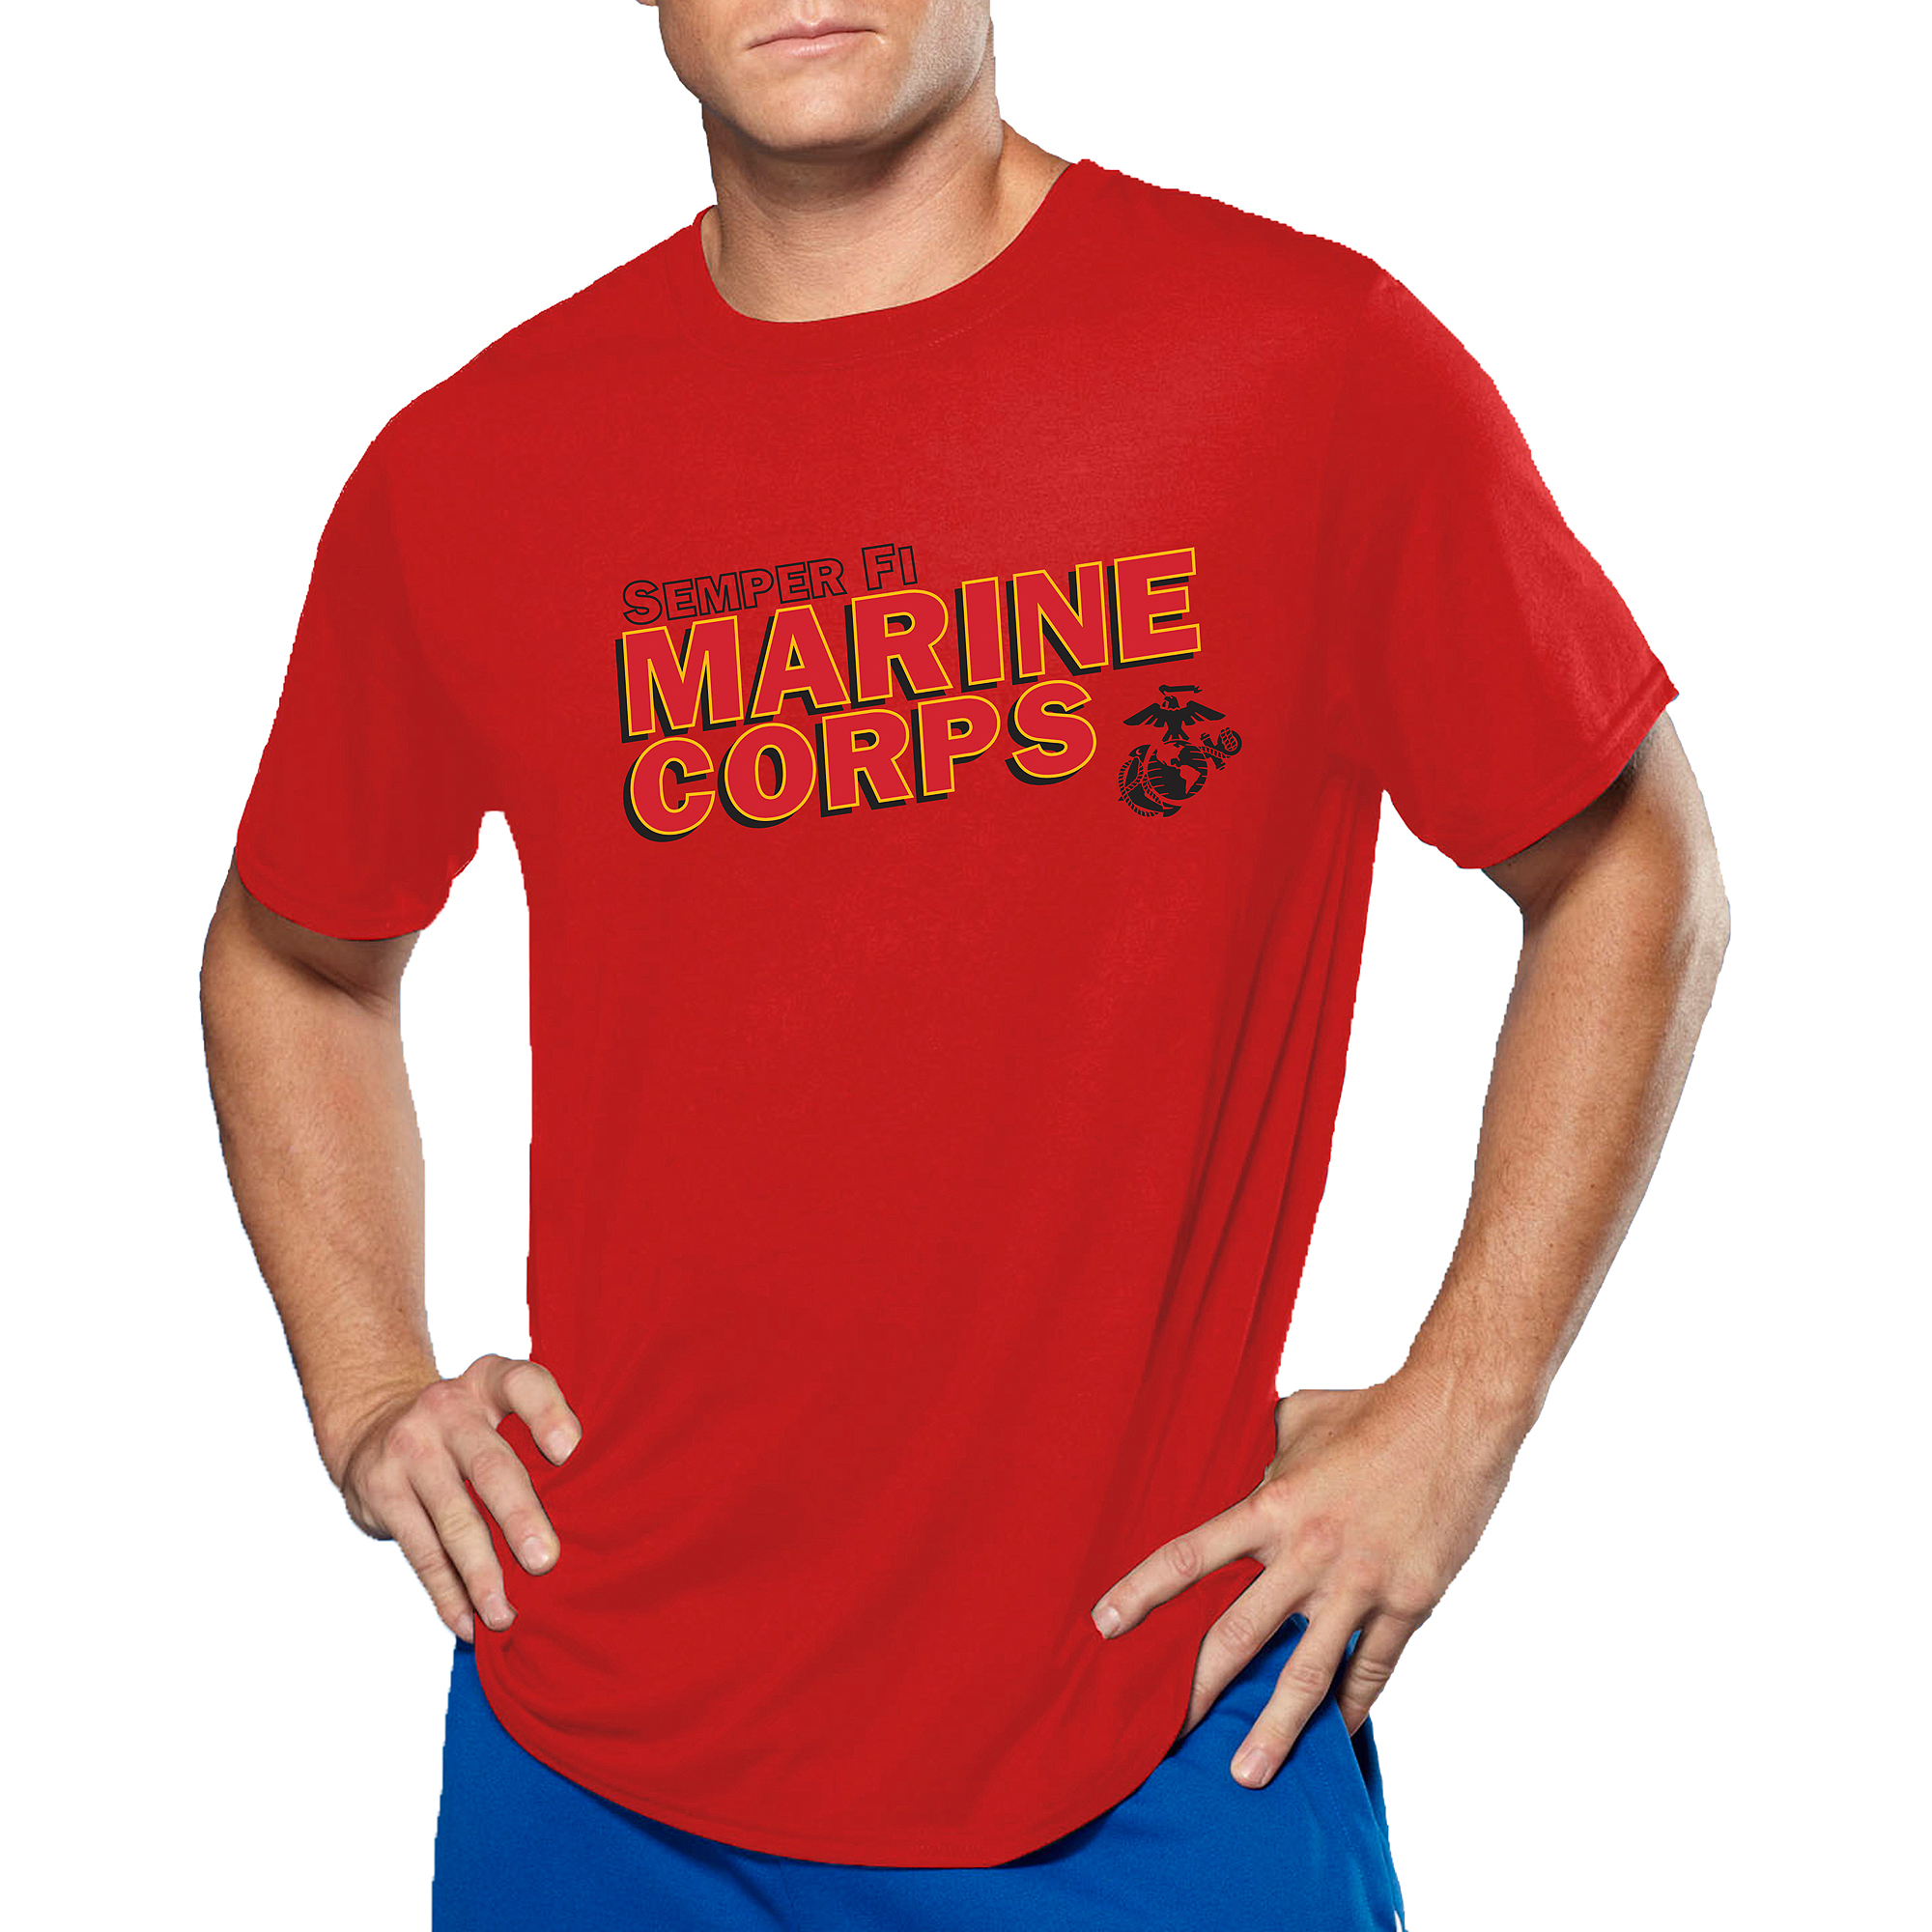 Men's Military Officially Licensed Marines Performance Comfort Wear Graphic Tee